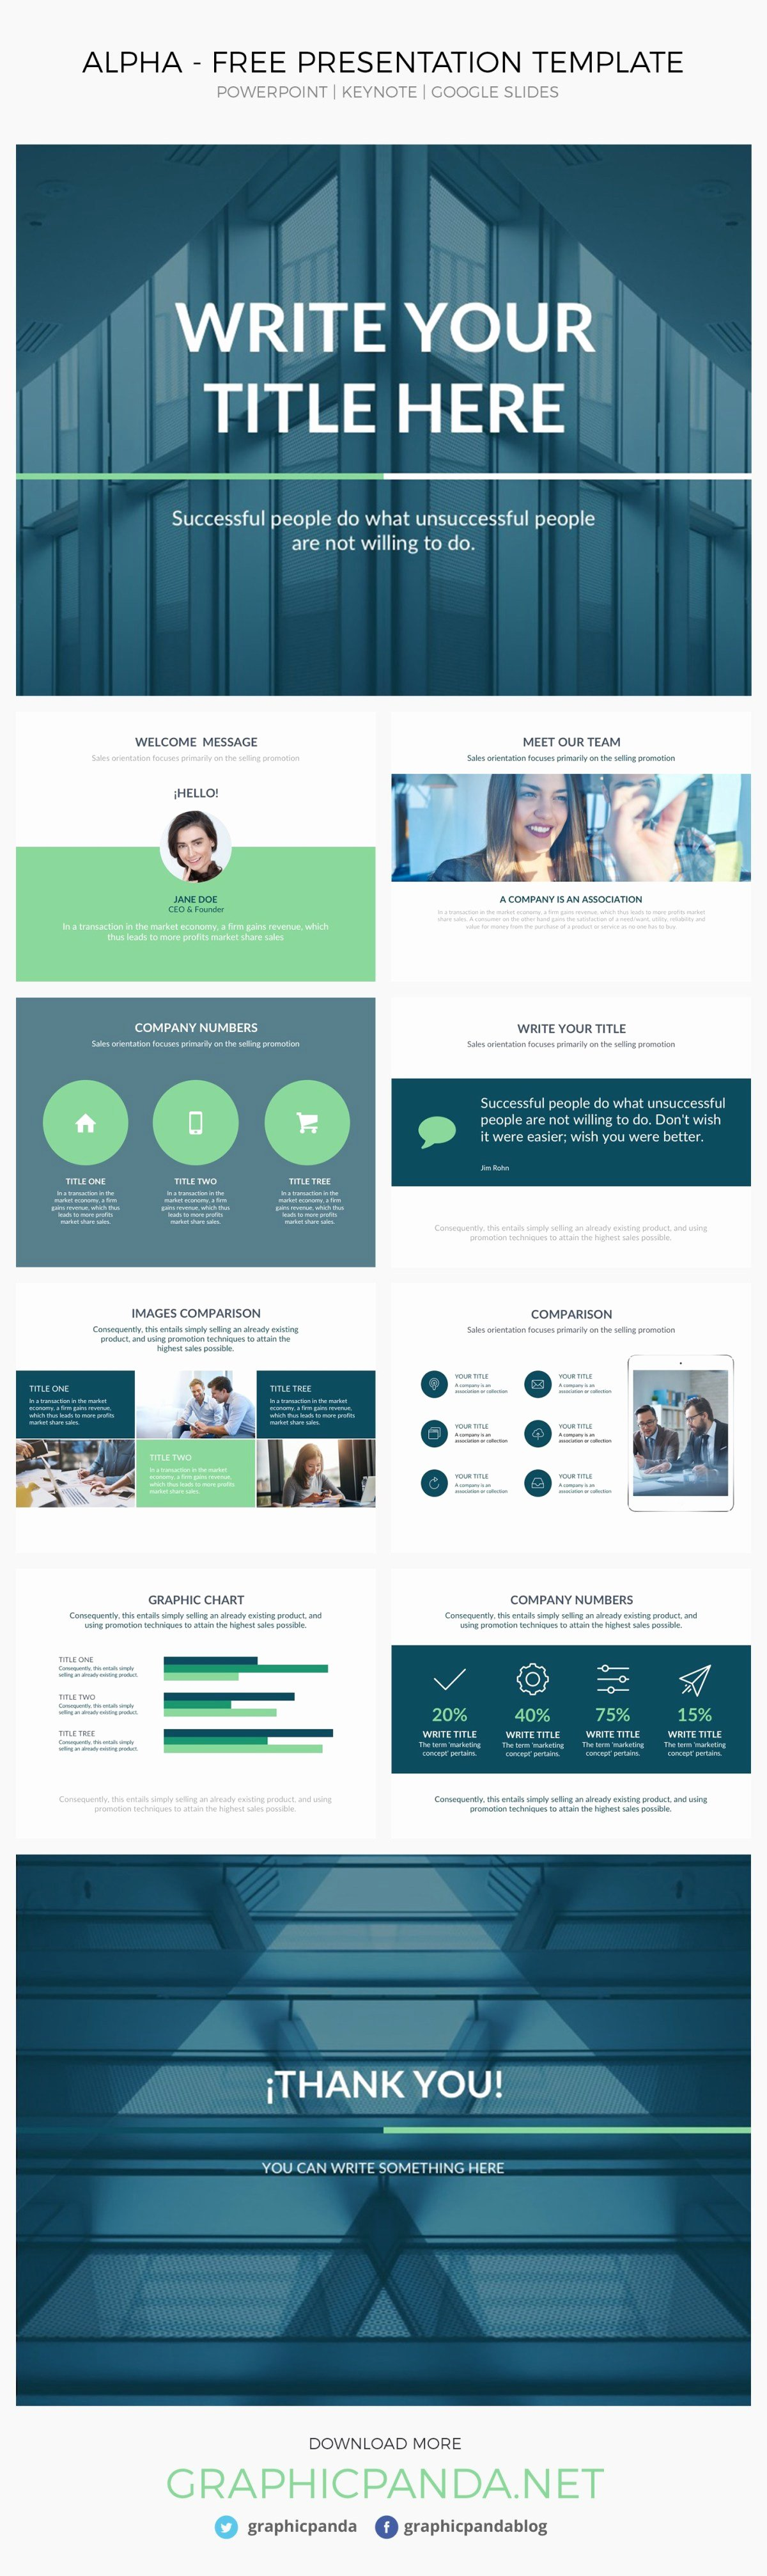 Alpha Presentation Template Powerpoint Keynote Google